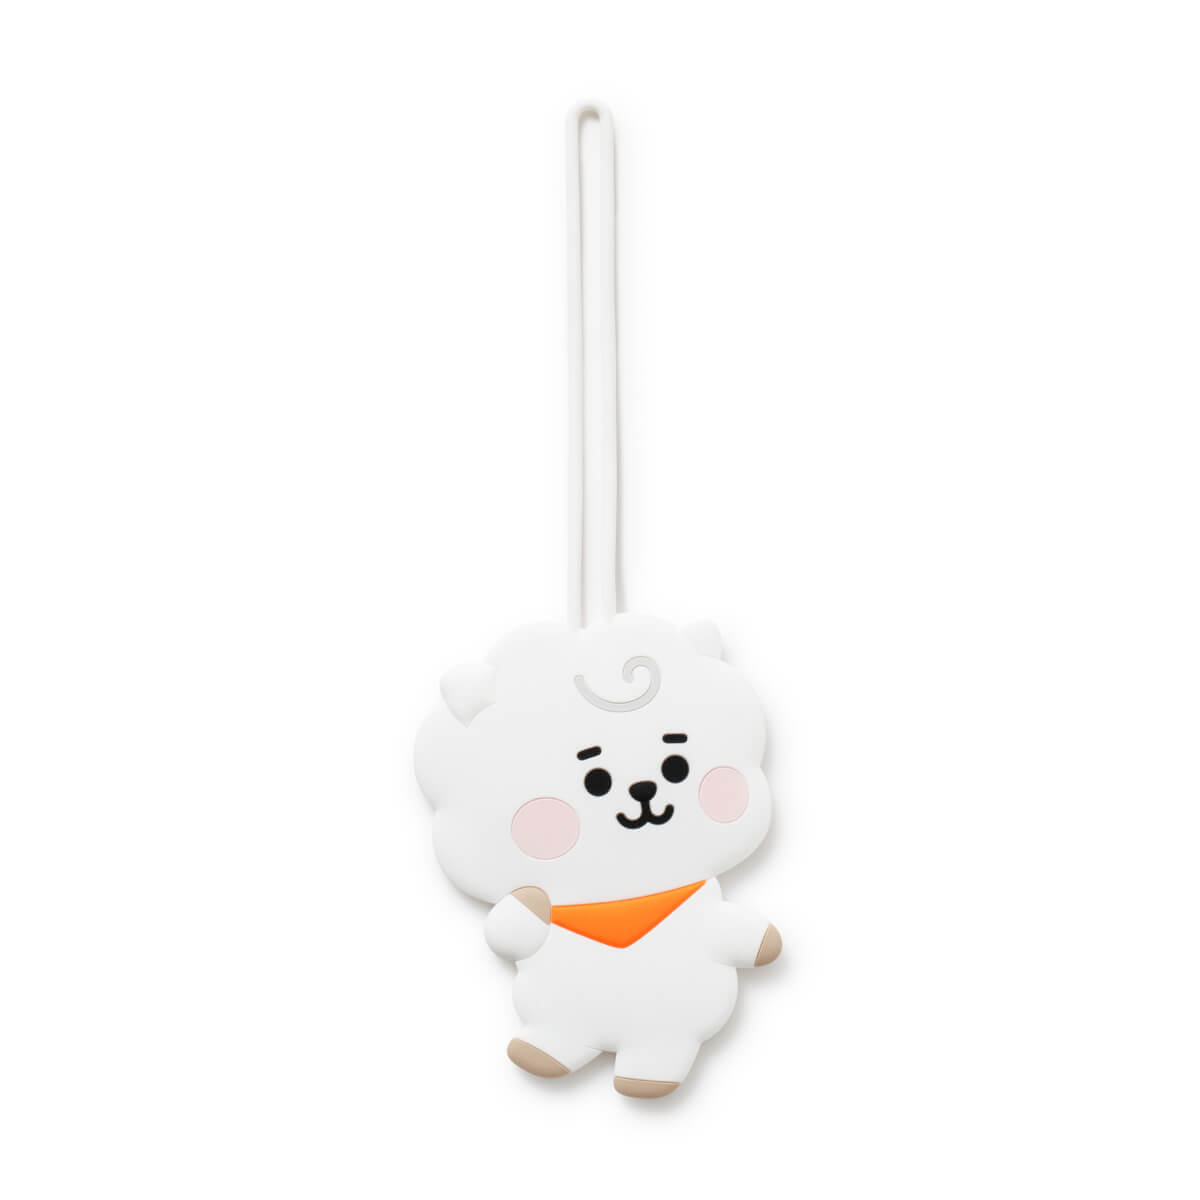 BT21 RJ BABY Silicone Name Tag